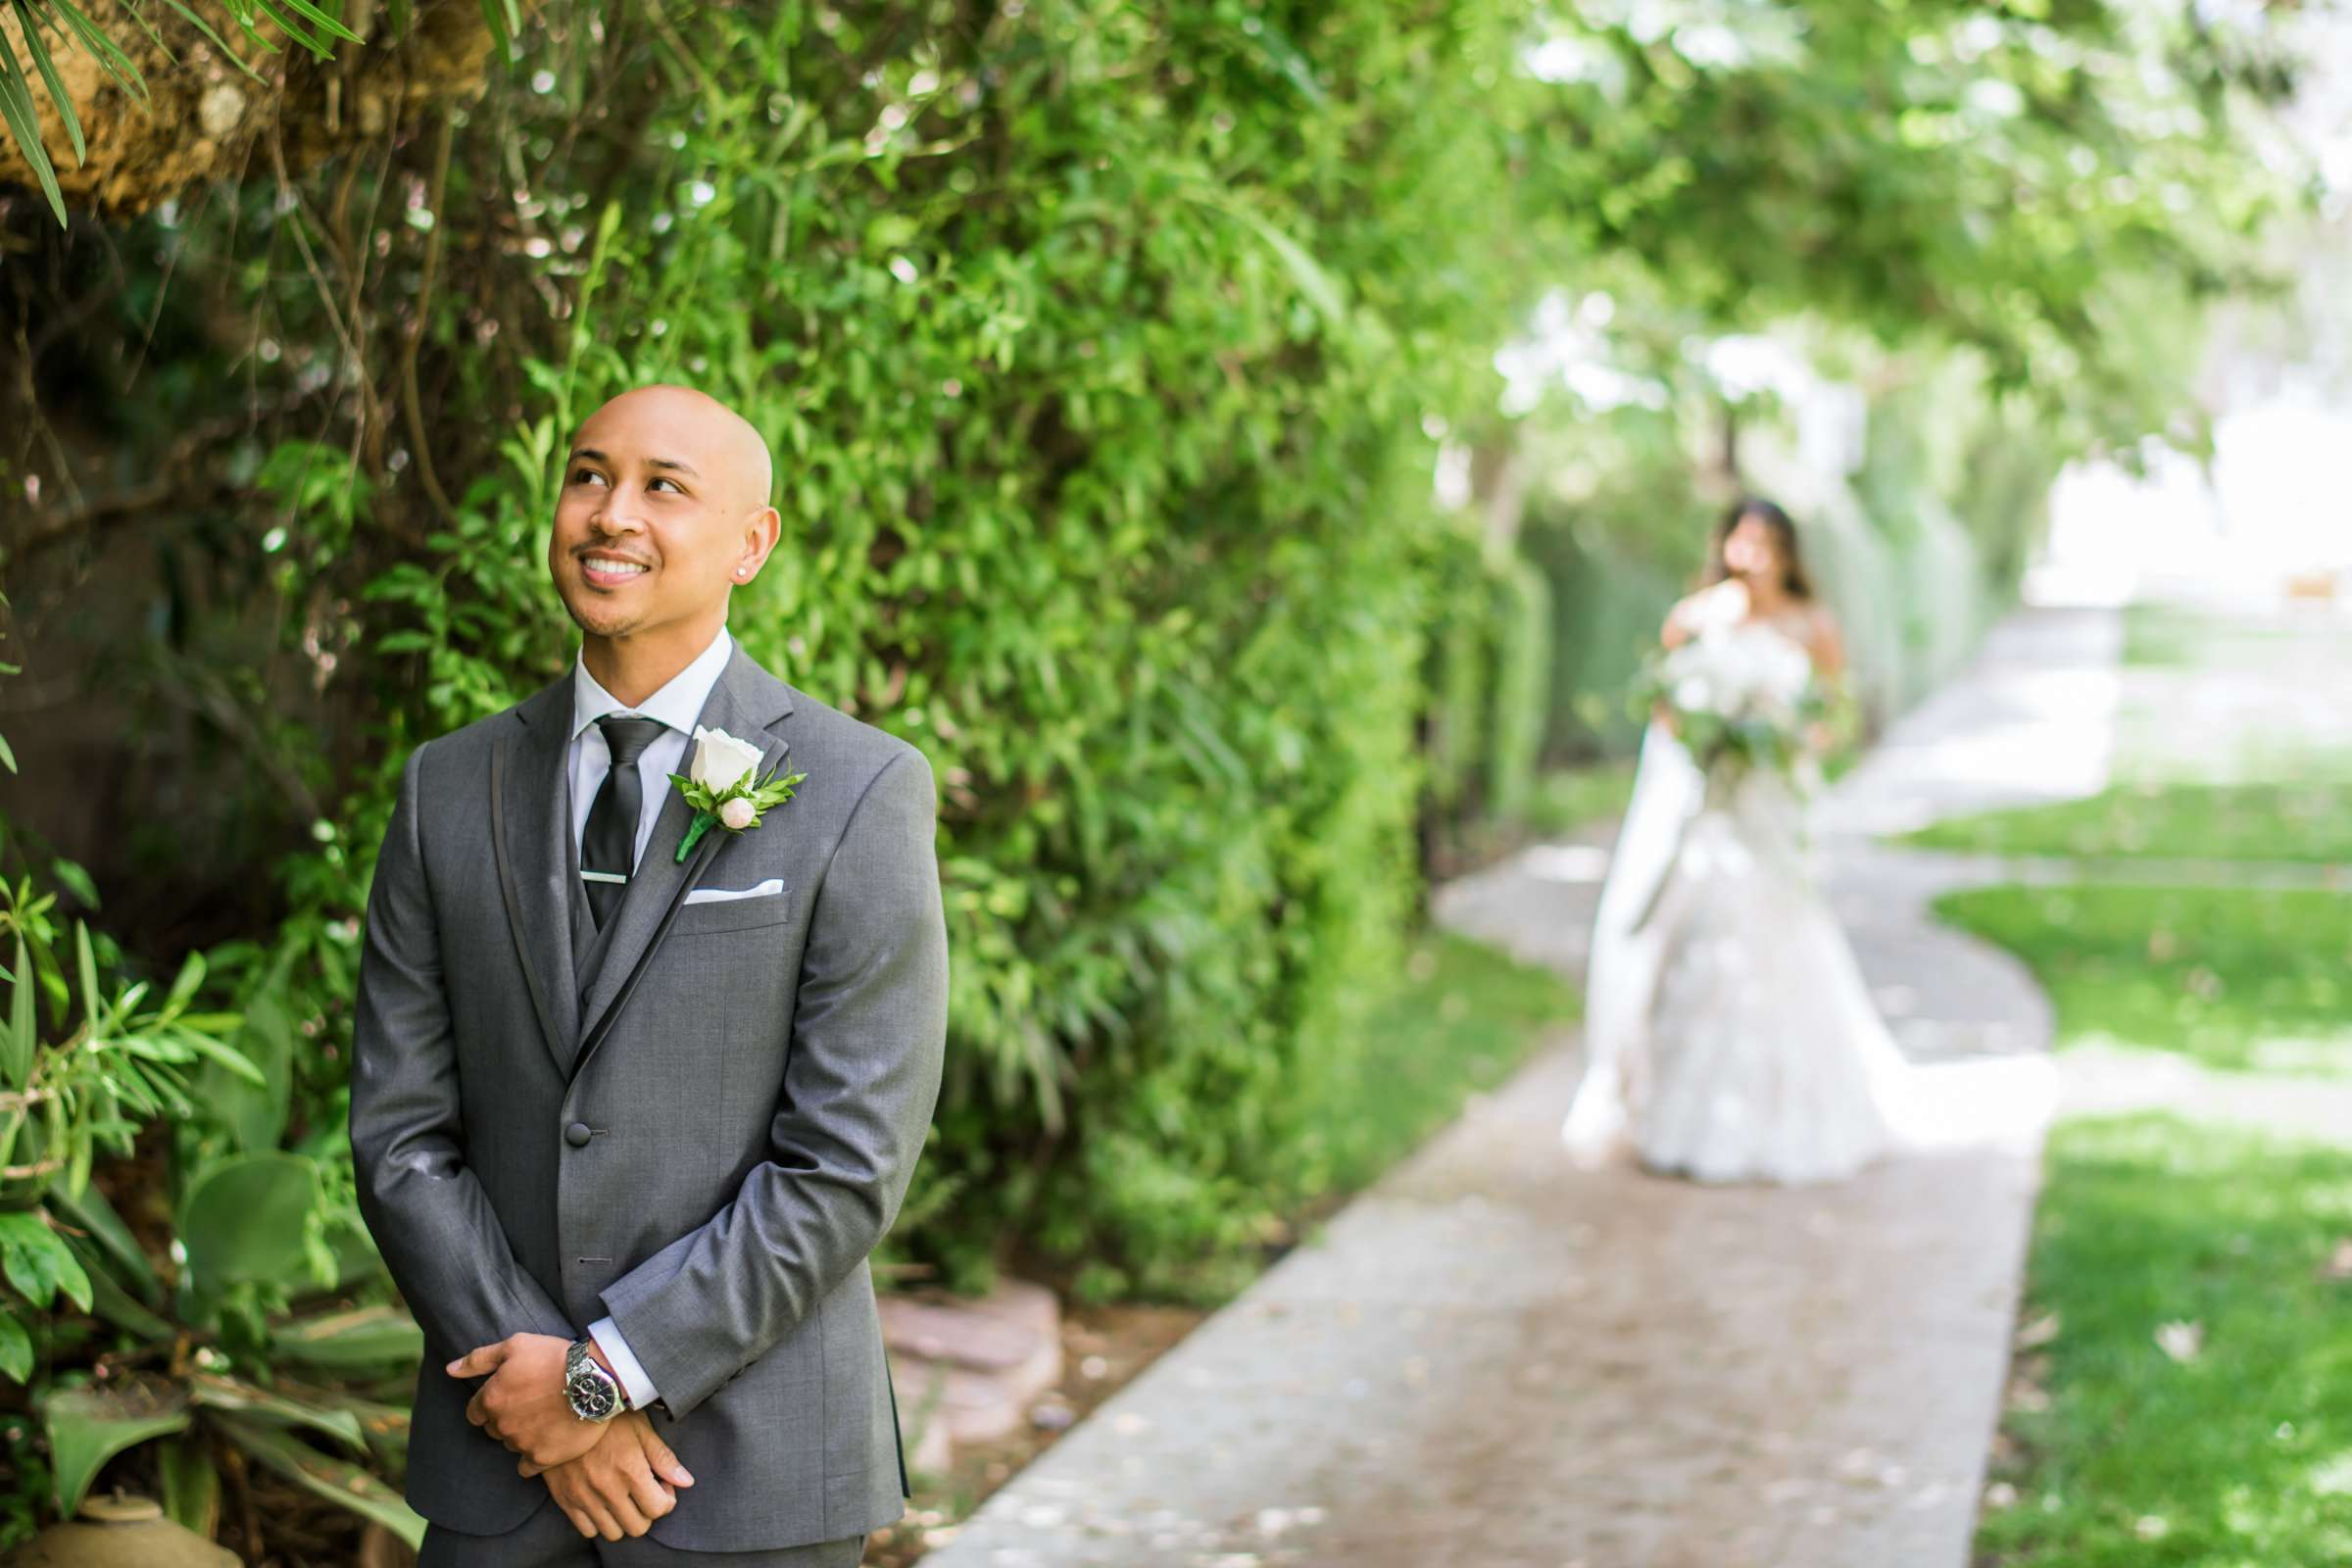 Scripps Seaside Forum Wedding coordinated by Lavish Weddings, Cindy and Justin Wedding Photo #381799 by True Photography